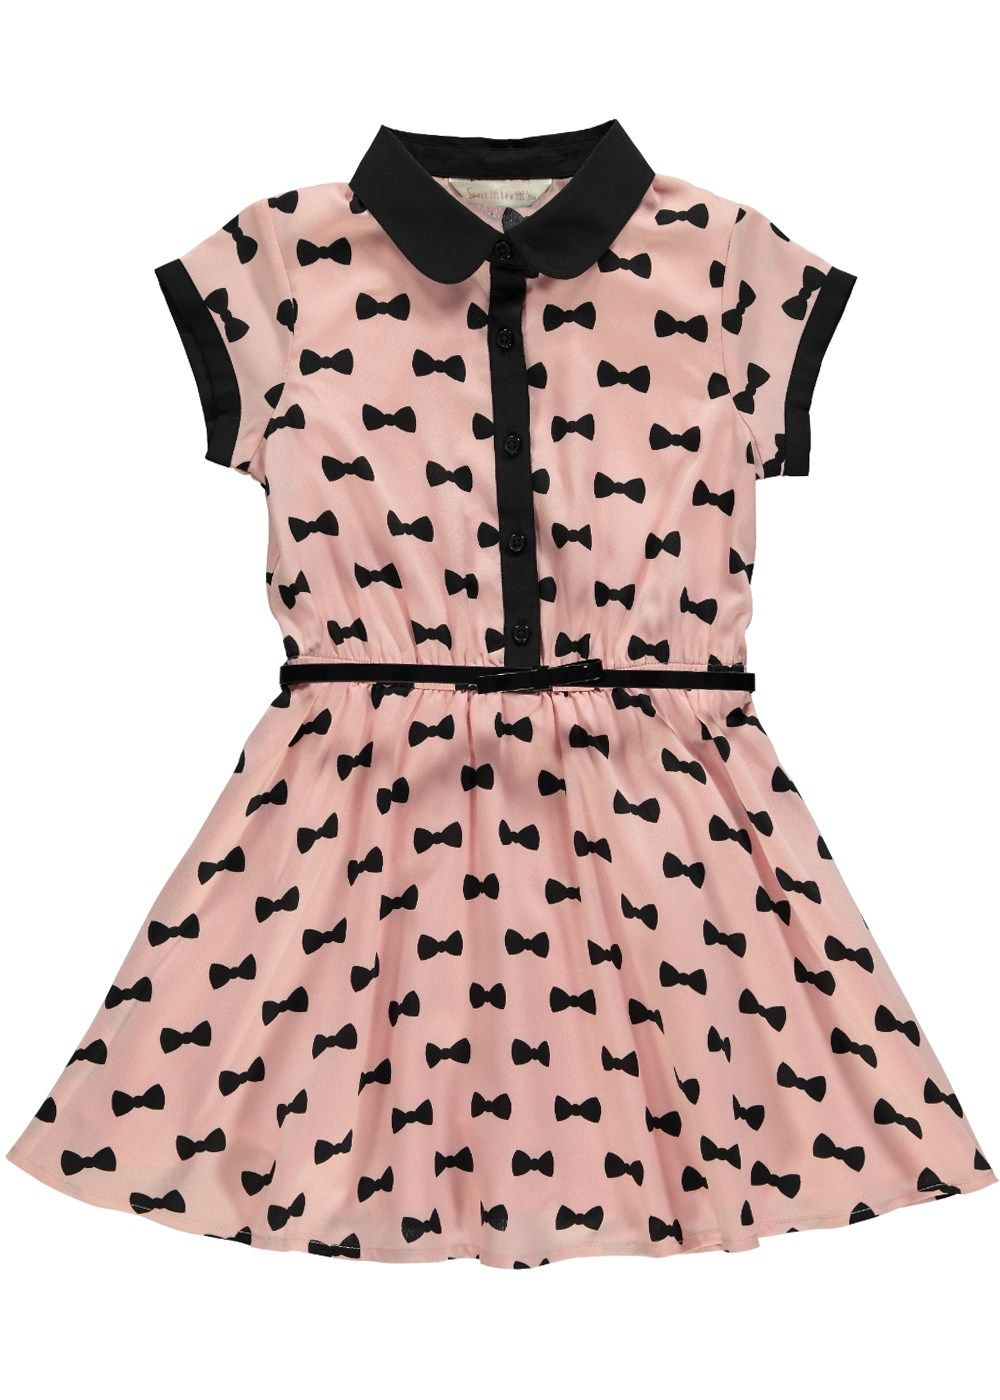 Girls Bow Print Dress - Matalan | Kids | Pinterest | Printing, Girls ...